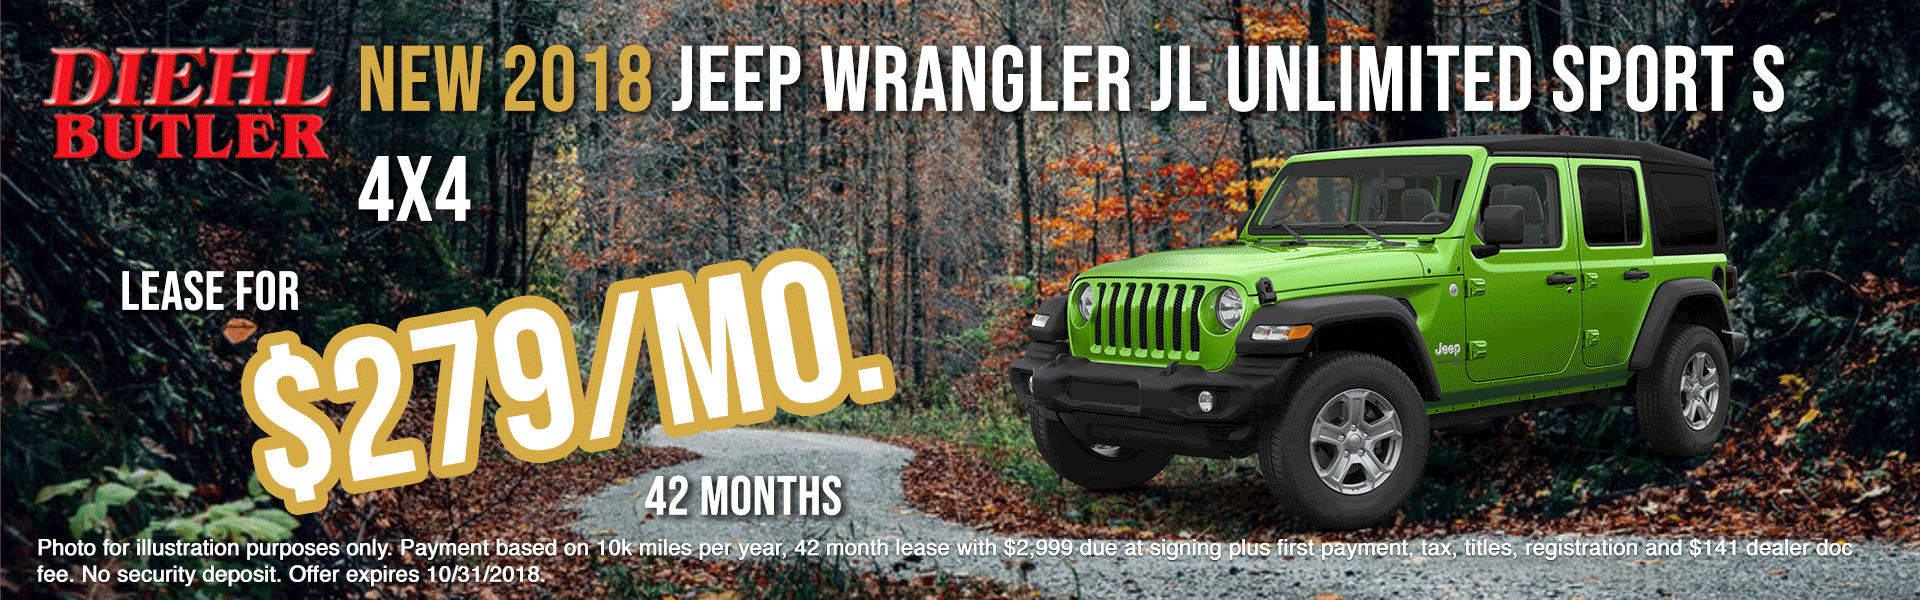 Butler New Vehicle Specials Diehl Of Butler New Vehicle Specials Jeep  Specials Ram Specials Dodge Specials